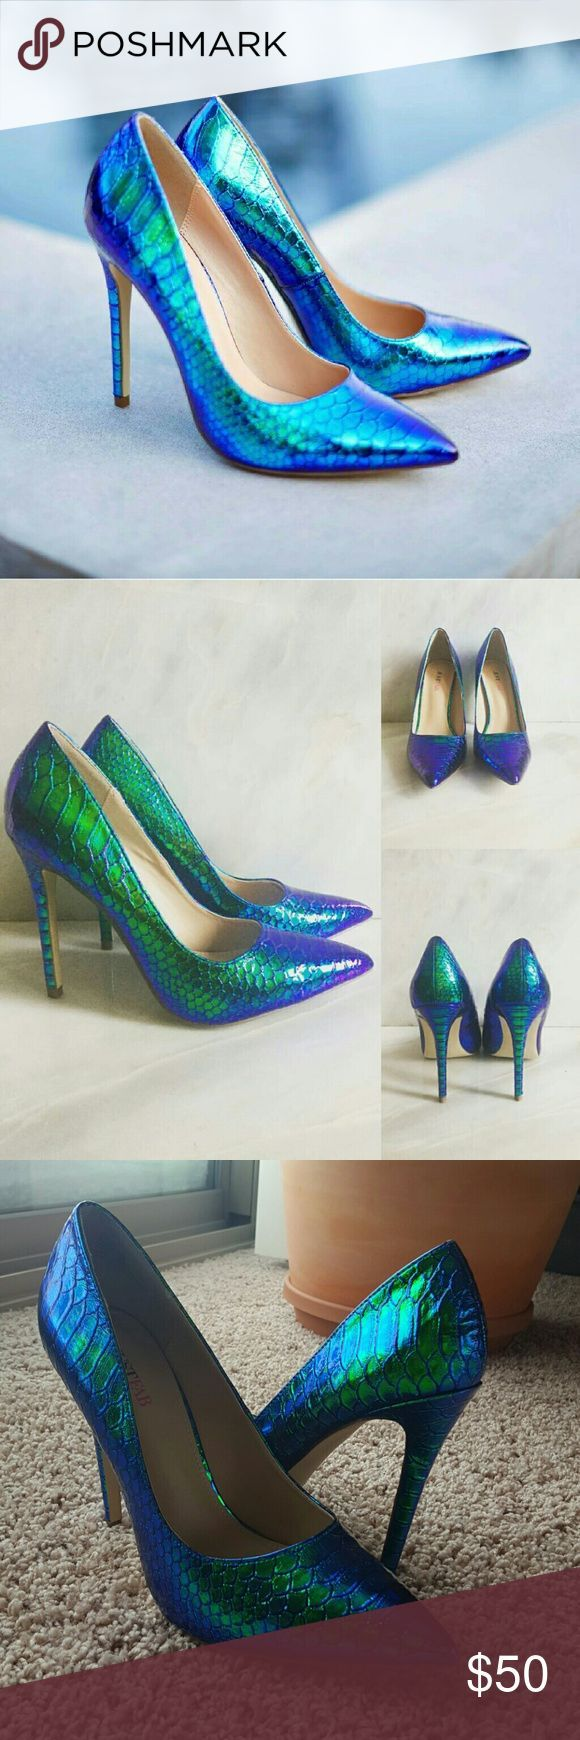 """Brand New! Mermaid Shoes! Something different. This is an eye catching style that won't be forgotten. Featuring a trendy iridescent styling and a flirty pointed toe, you?ll get all the compliments in this style. I've only tried these on. I love them because they're so unique and eye-catching. These babies sold out in a blink when they were released! Get them before they're gone! Shoe Details Approx. Heel Height: 4.25"""" True to size JustFab Shoes Heels"""